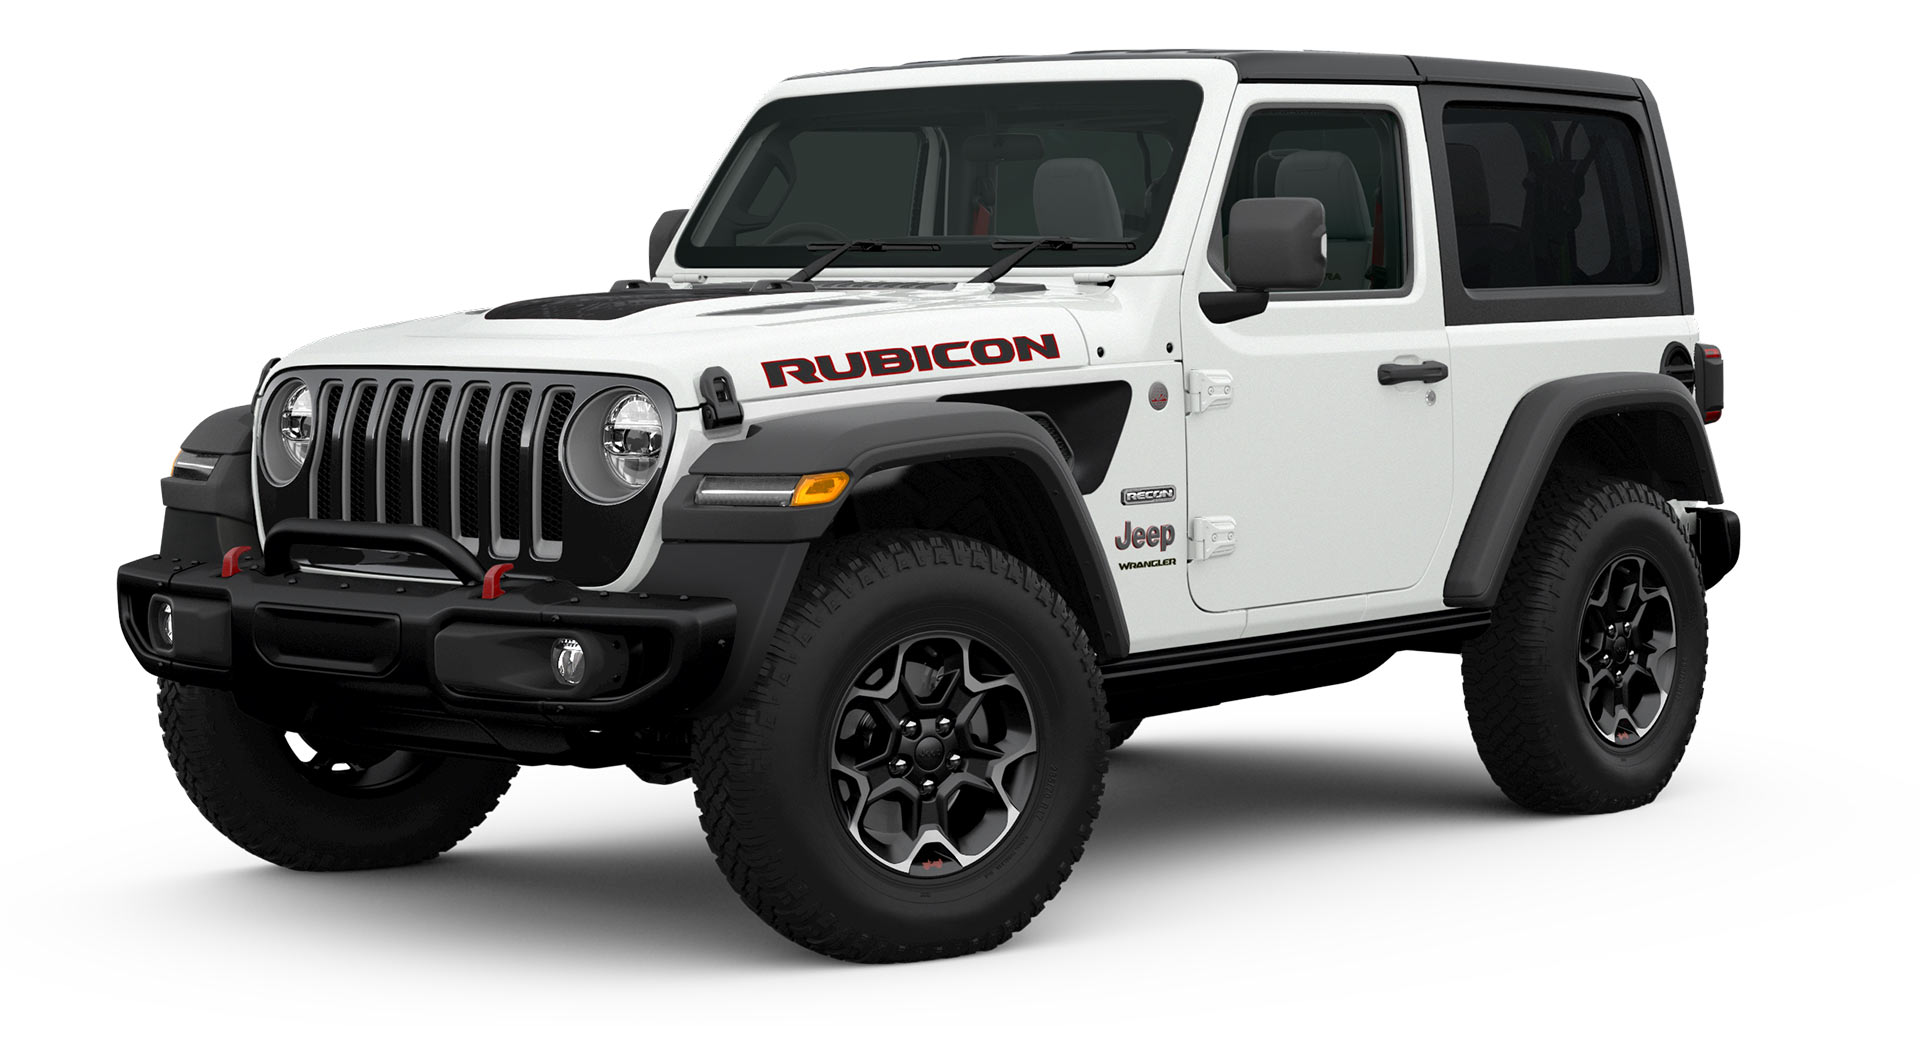 Jeep Wrangler Rubicon Recon Lands In Australia And Is Capped At 100 Units Carscoops